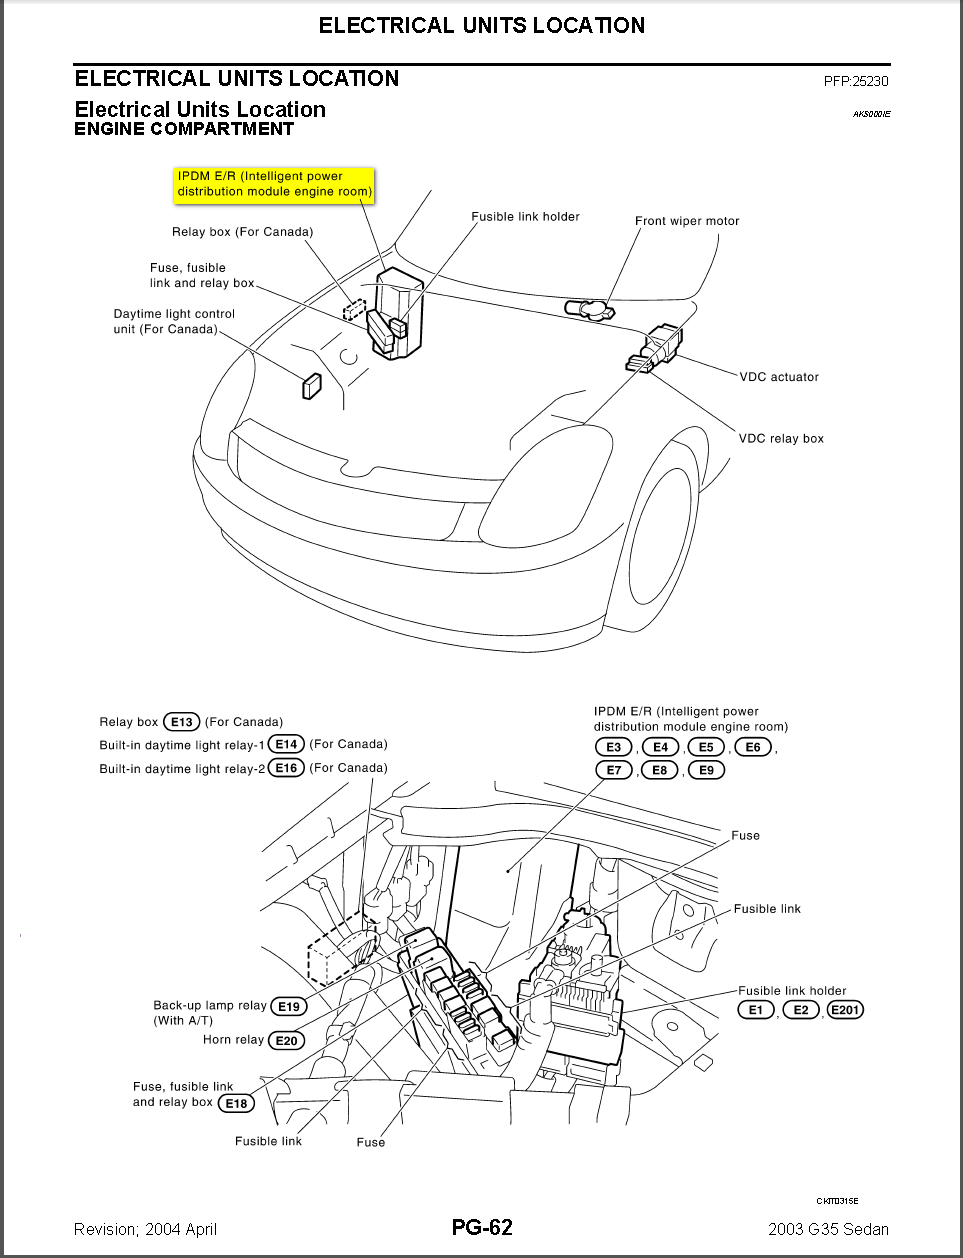 Nissan Altima Catalytic Converter Location furthermore 2014 Nissan Altima Belt Diagram additionally Nissan Altima 2006 Engine Diagram further 2007 Nissan Frontier Fuse Box moreover 402298179186636212. on 2006 nissan altima undercarriage diagram